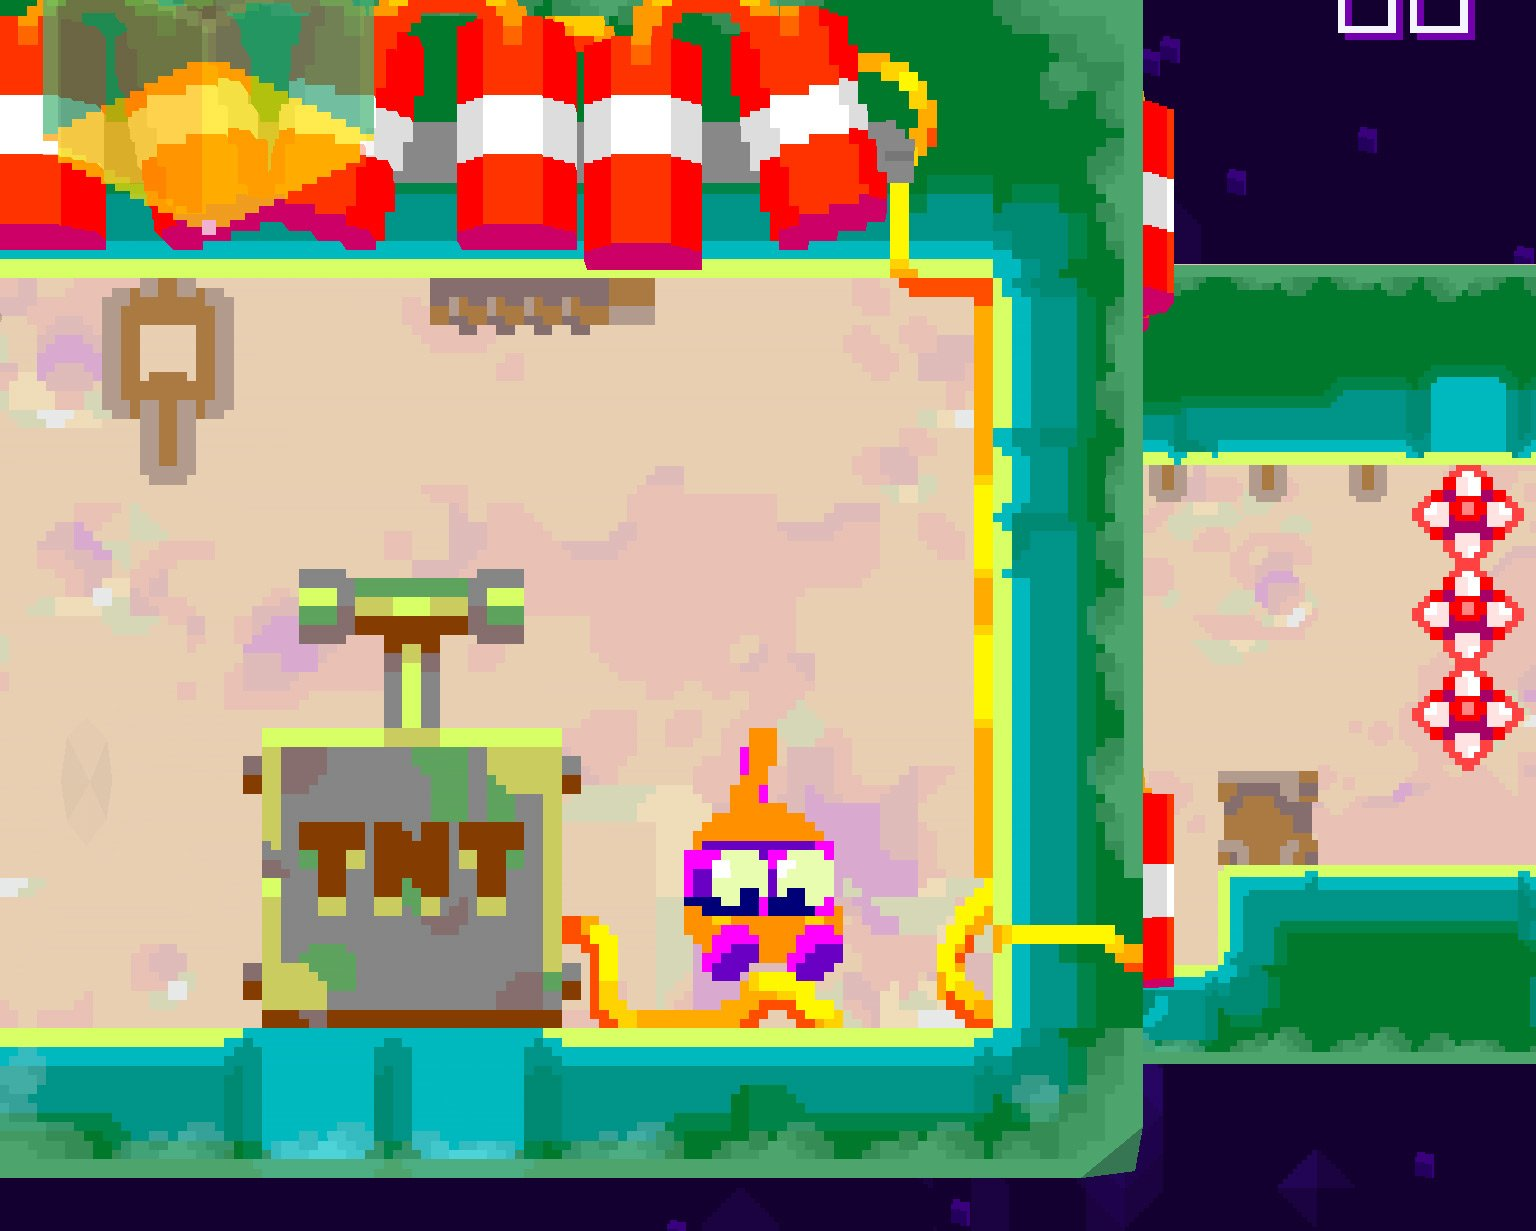 Flat Pack is cute, challenging, and currently looking for a home on your iPhone or Android screenshot